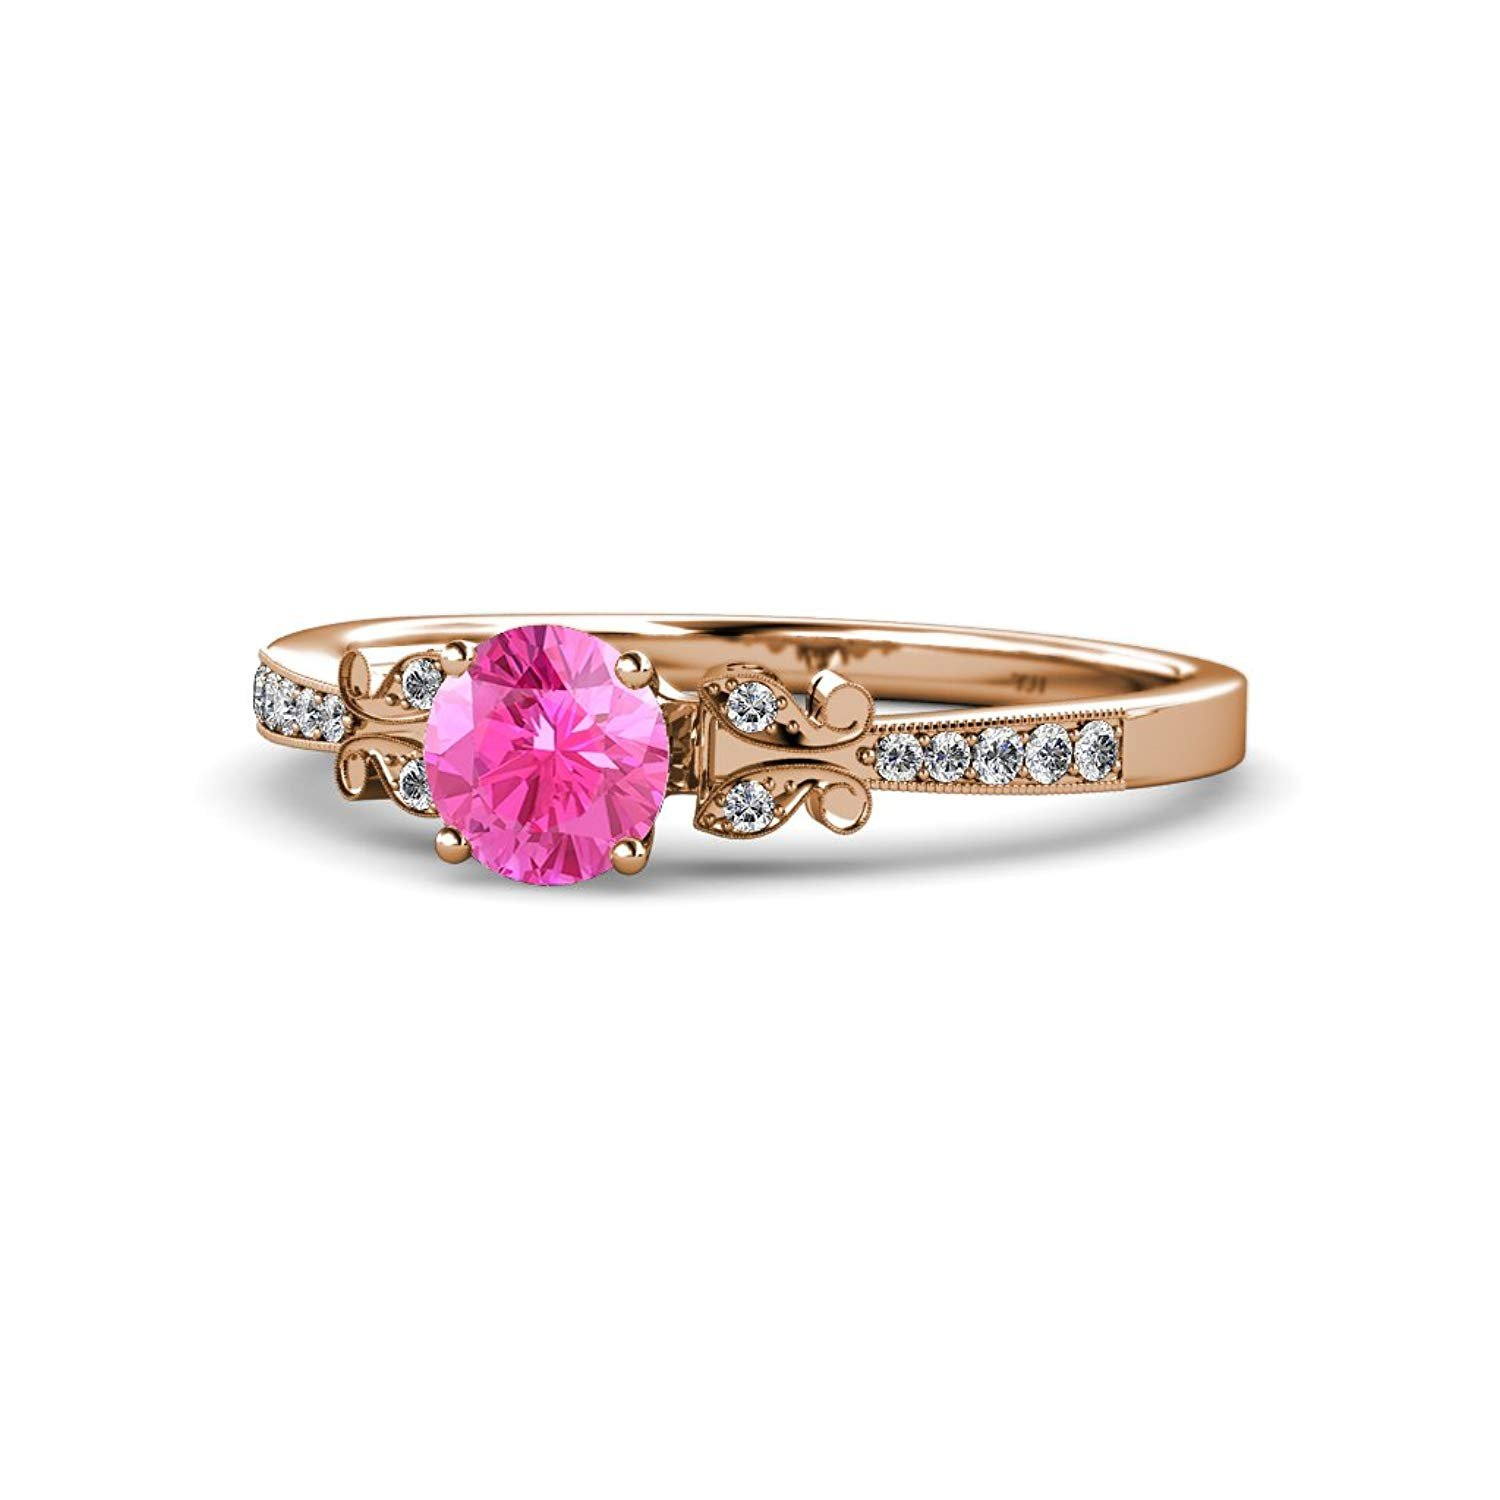 Pink Sapphire and Diamond Engagement Ring with Milgrain Work 1.12 cttw in 14K Rose Gold.size 7.5 by TriJewels